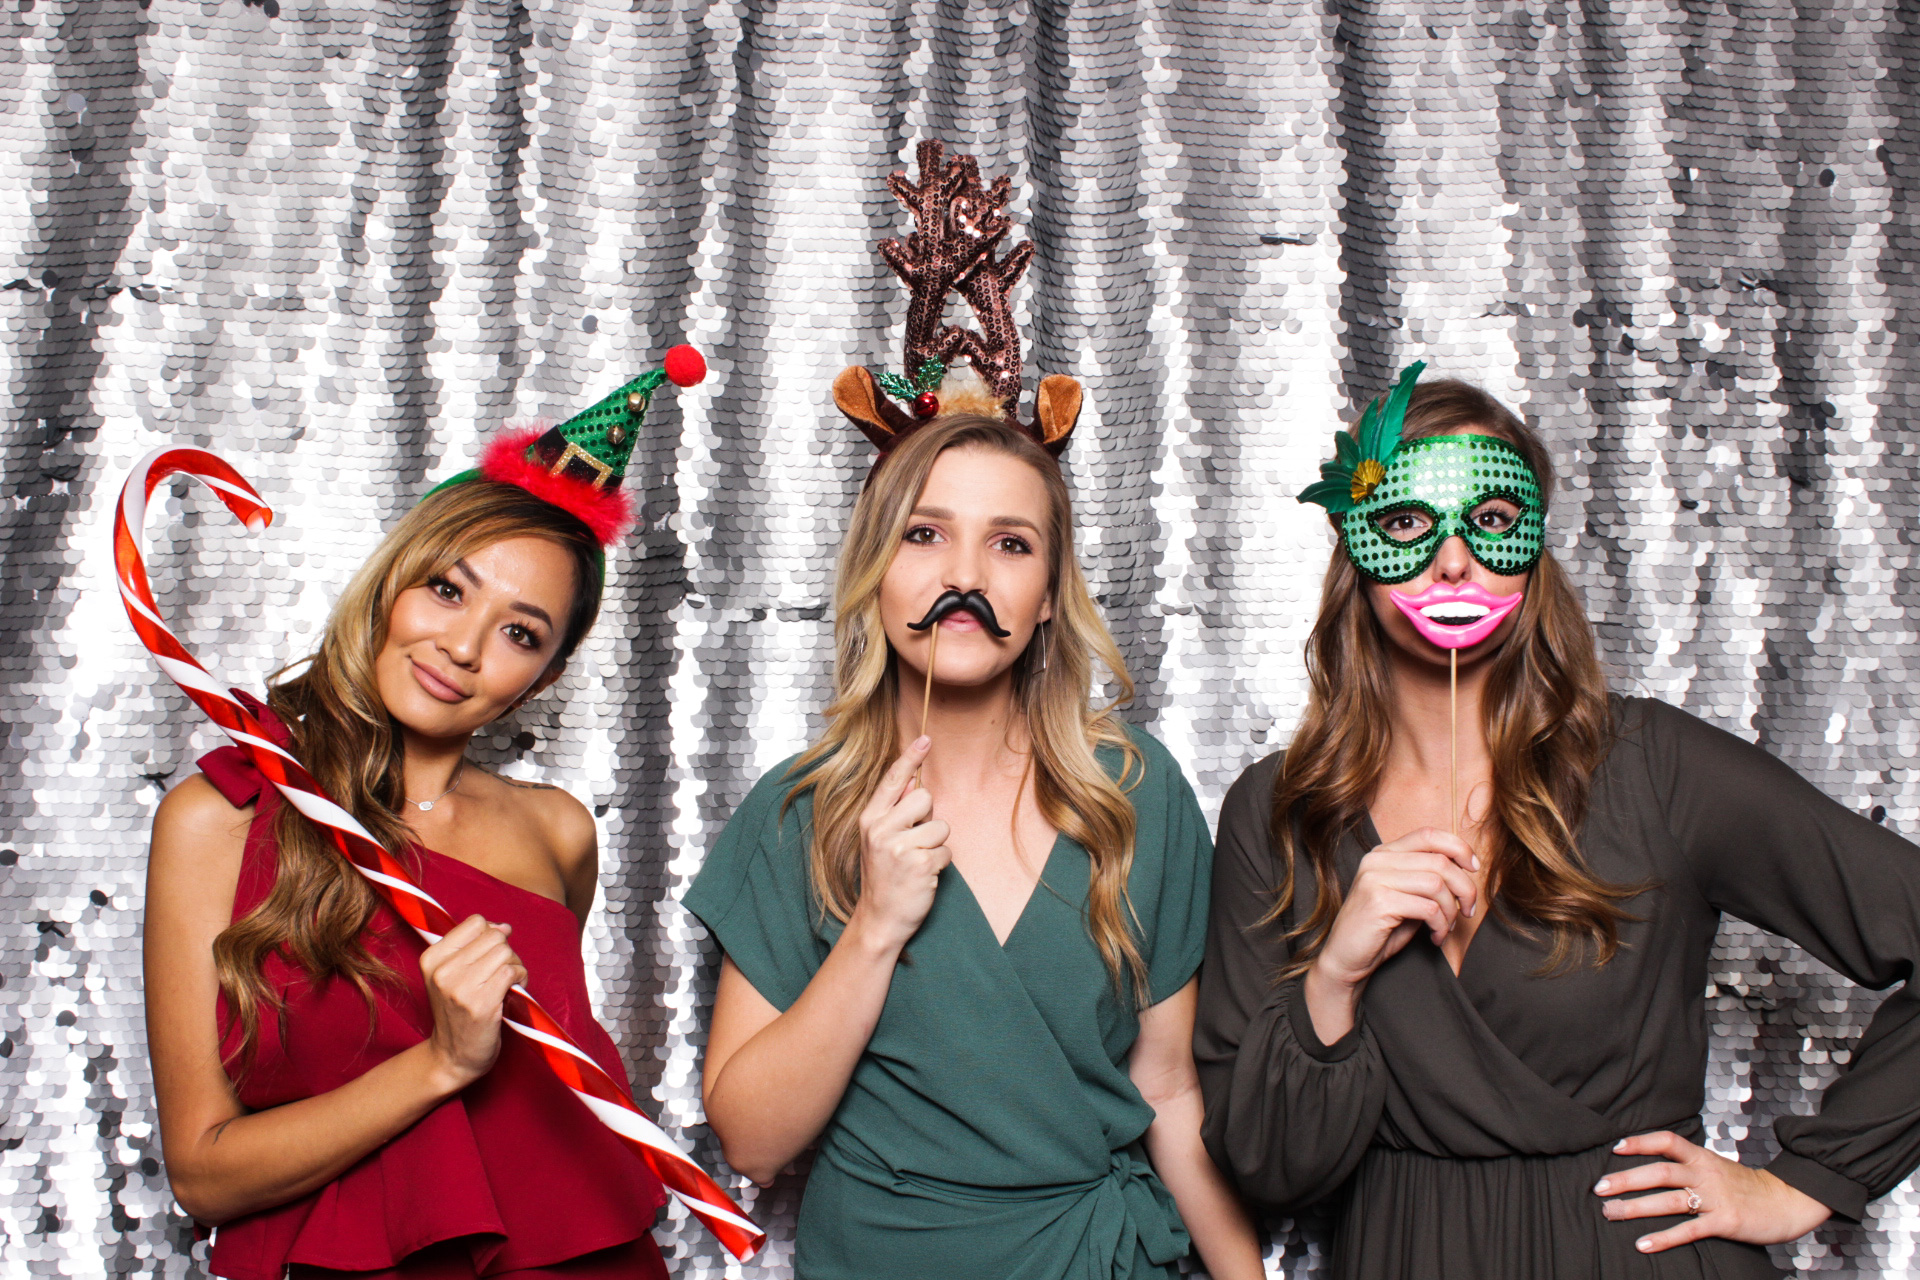 Three female friends posing wearing holiday themed costume